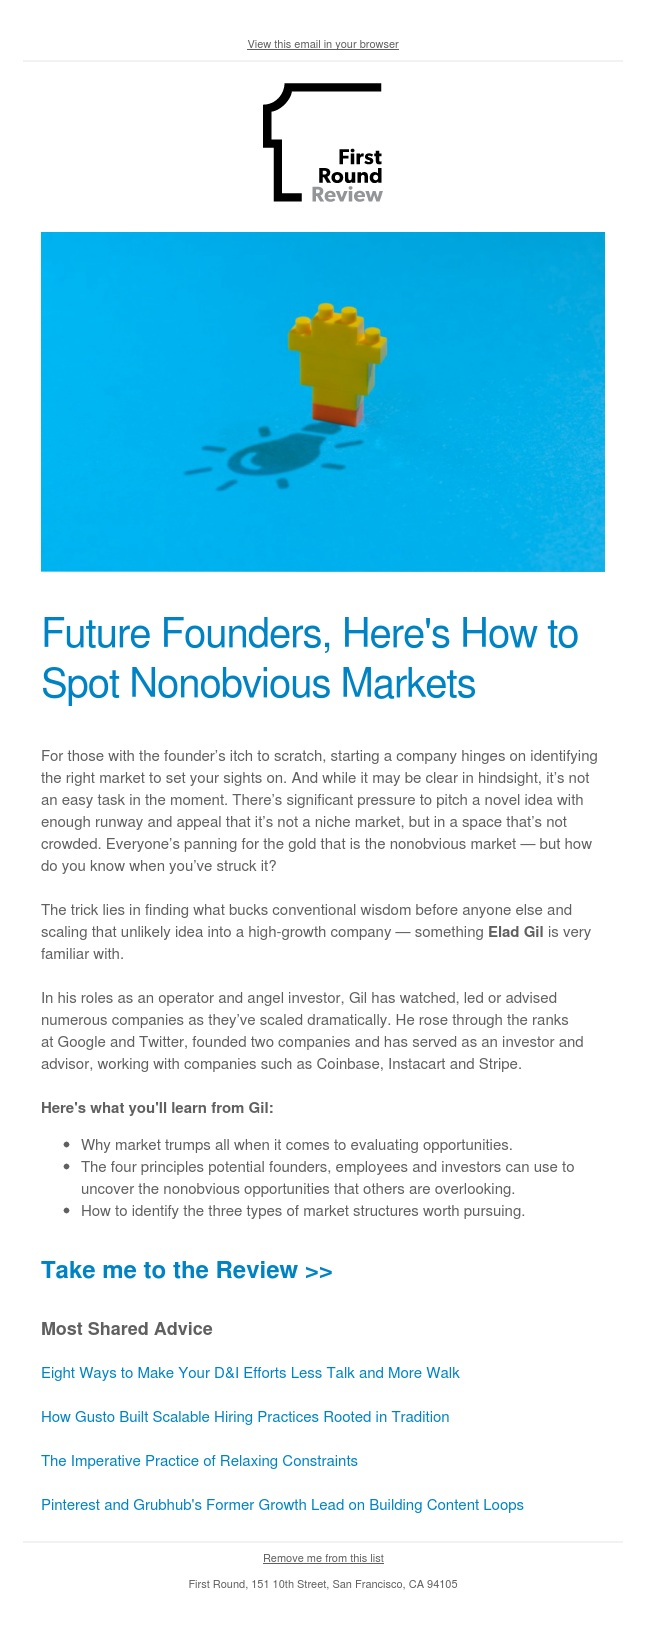 Elad Gil's guide to identifying nonobvious markets